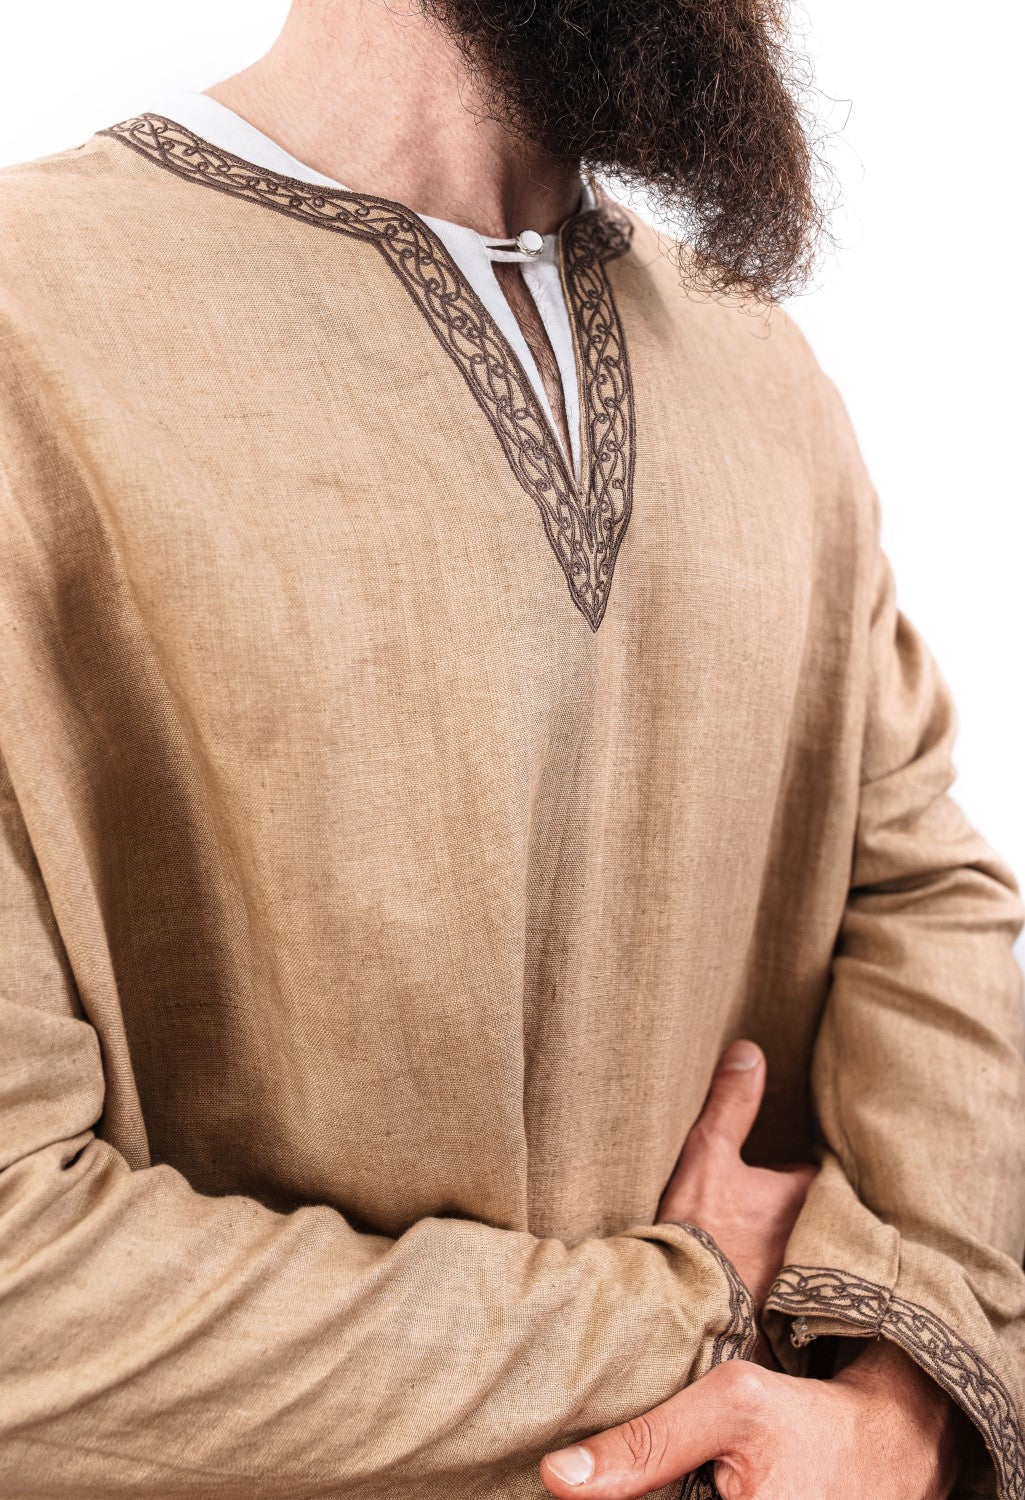 Small size S-M linen tunic with Thor/'s Hammer Seasonal Sale cosplay fantasy Viking reenactment 20/% Price Reduction!